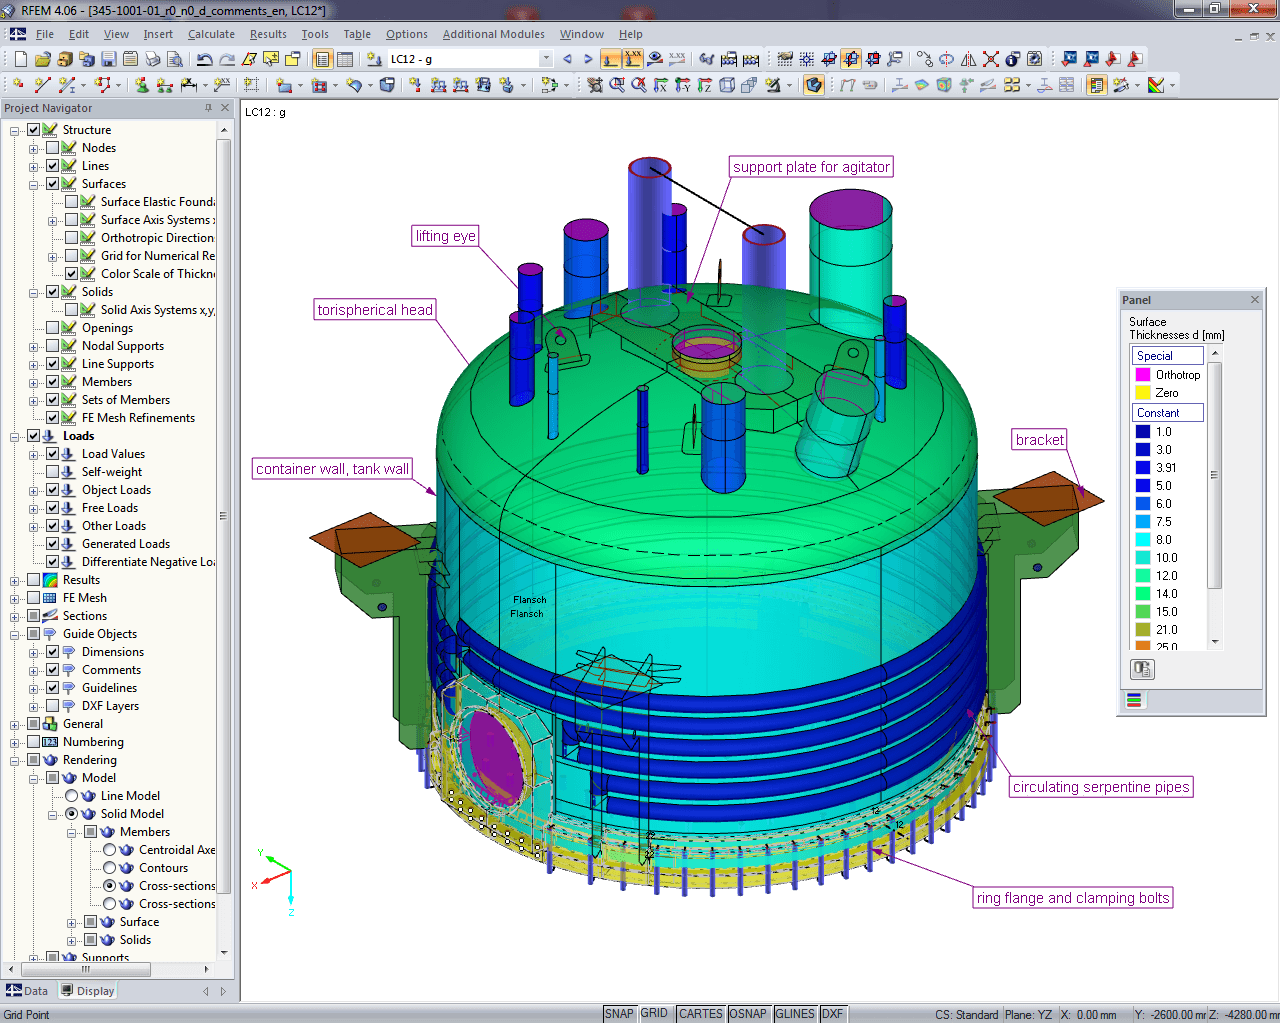 Modello di analisi in RFEM (© Peter & Partner)